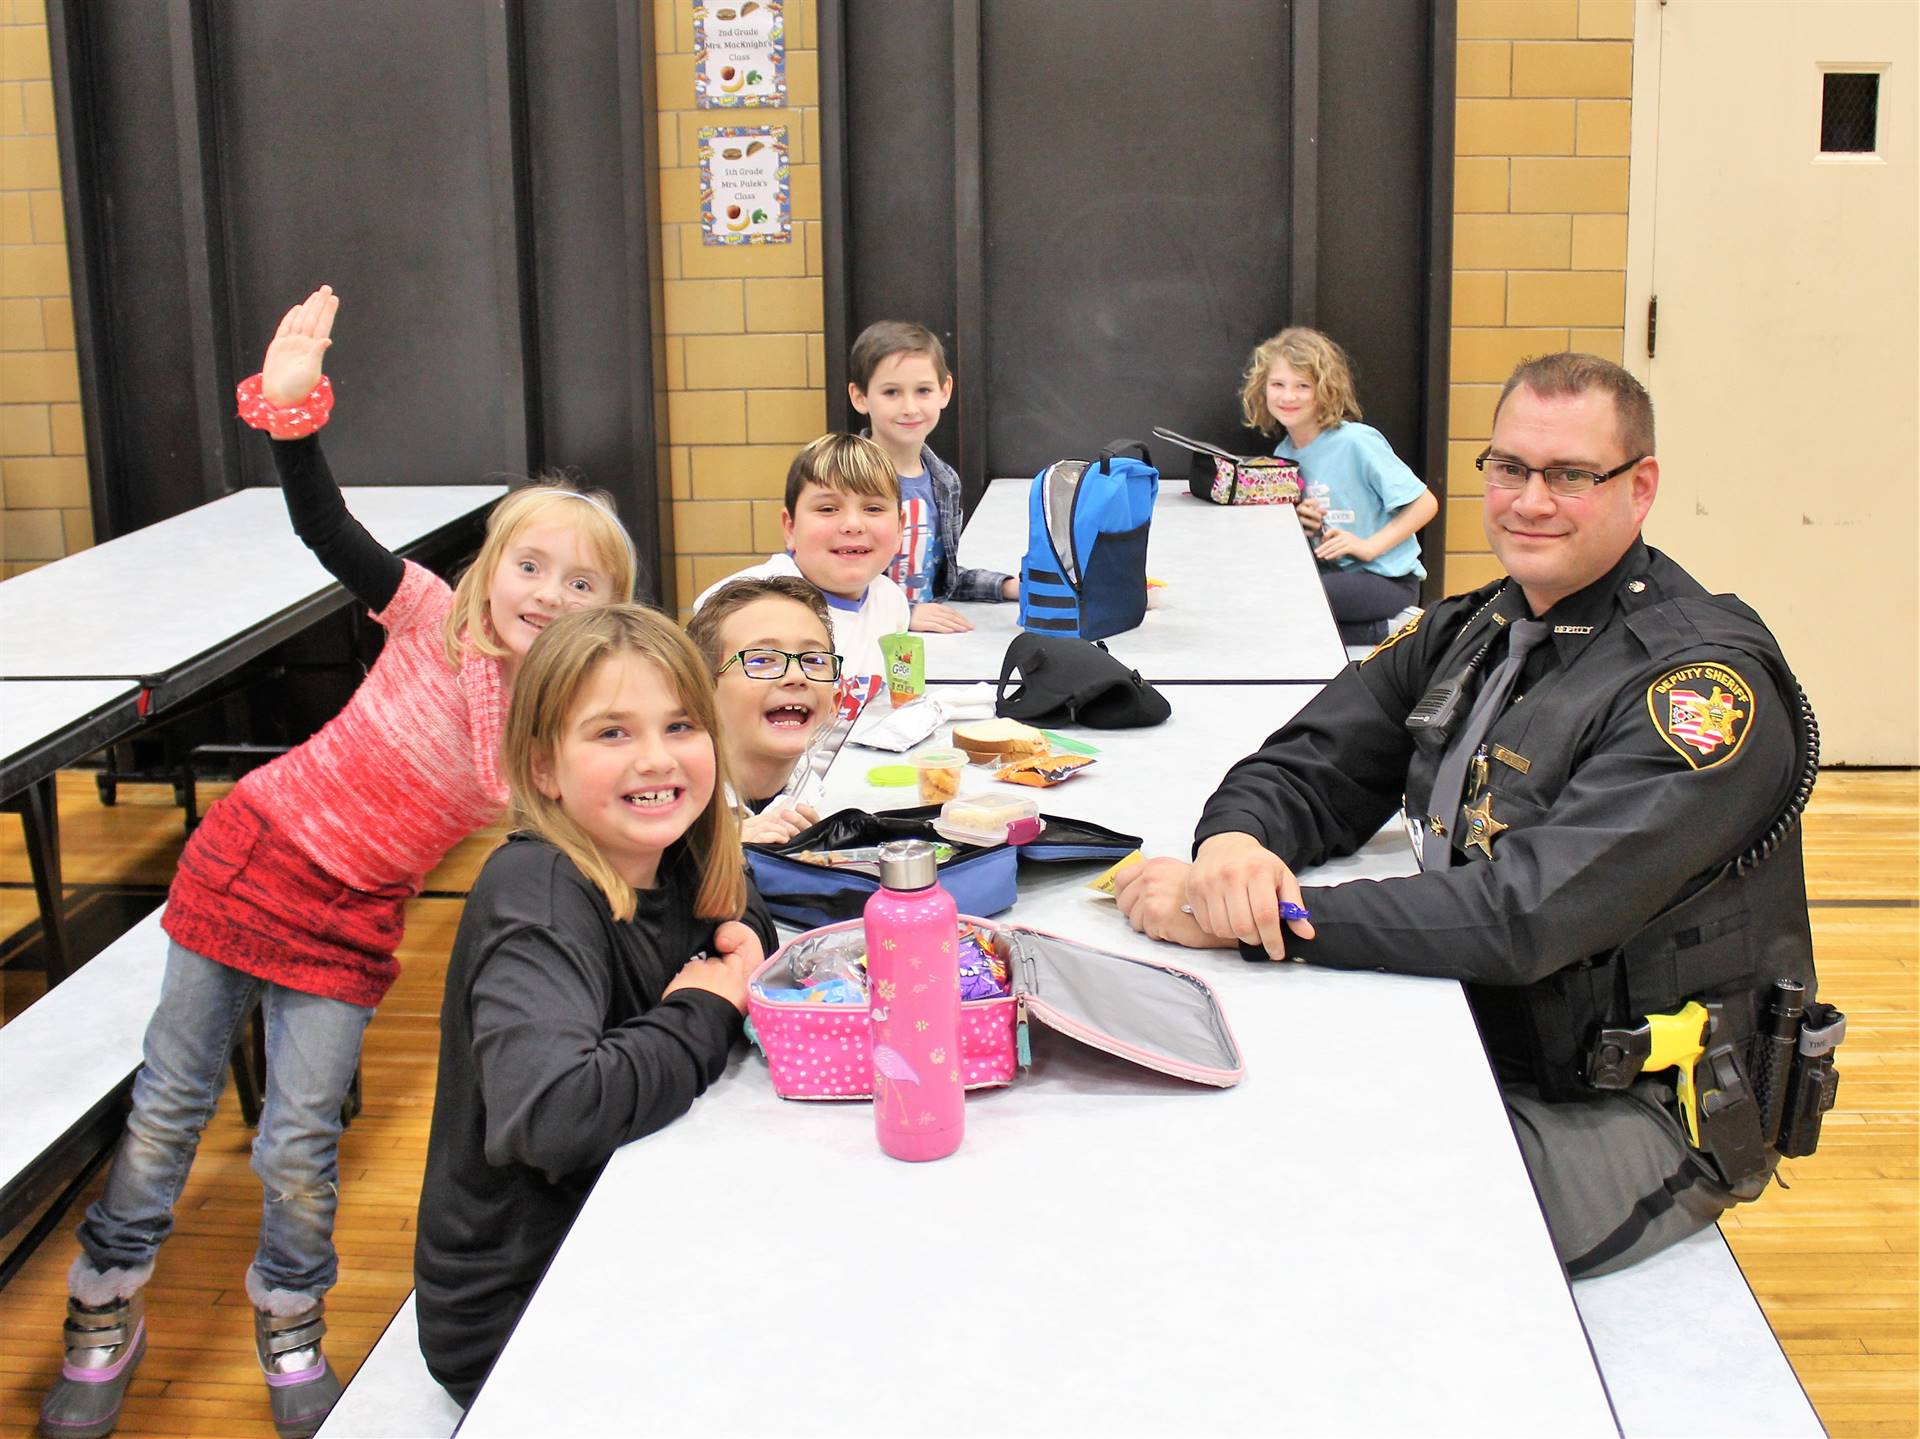 Lunch with Deputy Eisenberg